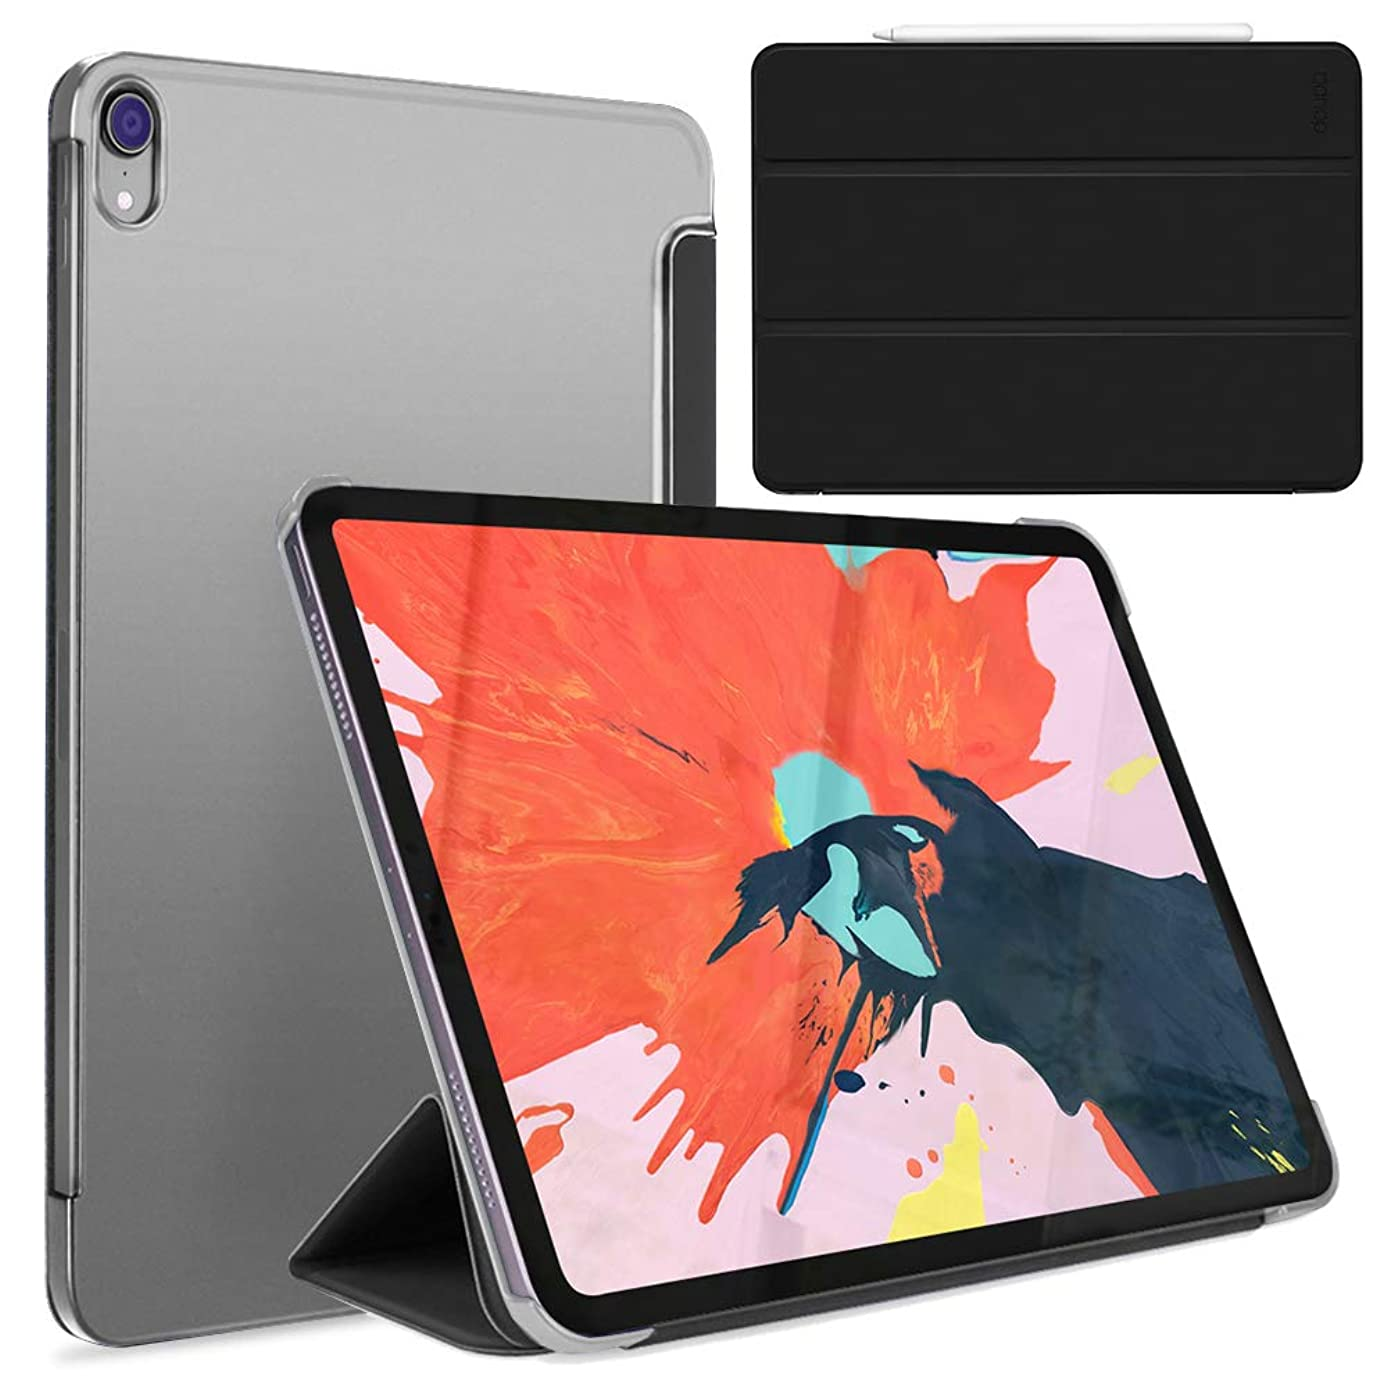 doupi FlipCase for iPad Pro 12.9 inch (2018), Deluxe Flip Cover with Smart Sleep/Wake Up Function, can be Set up as Stand for Video Viewing or Writing, Black